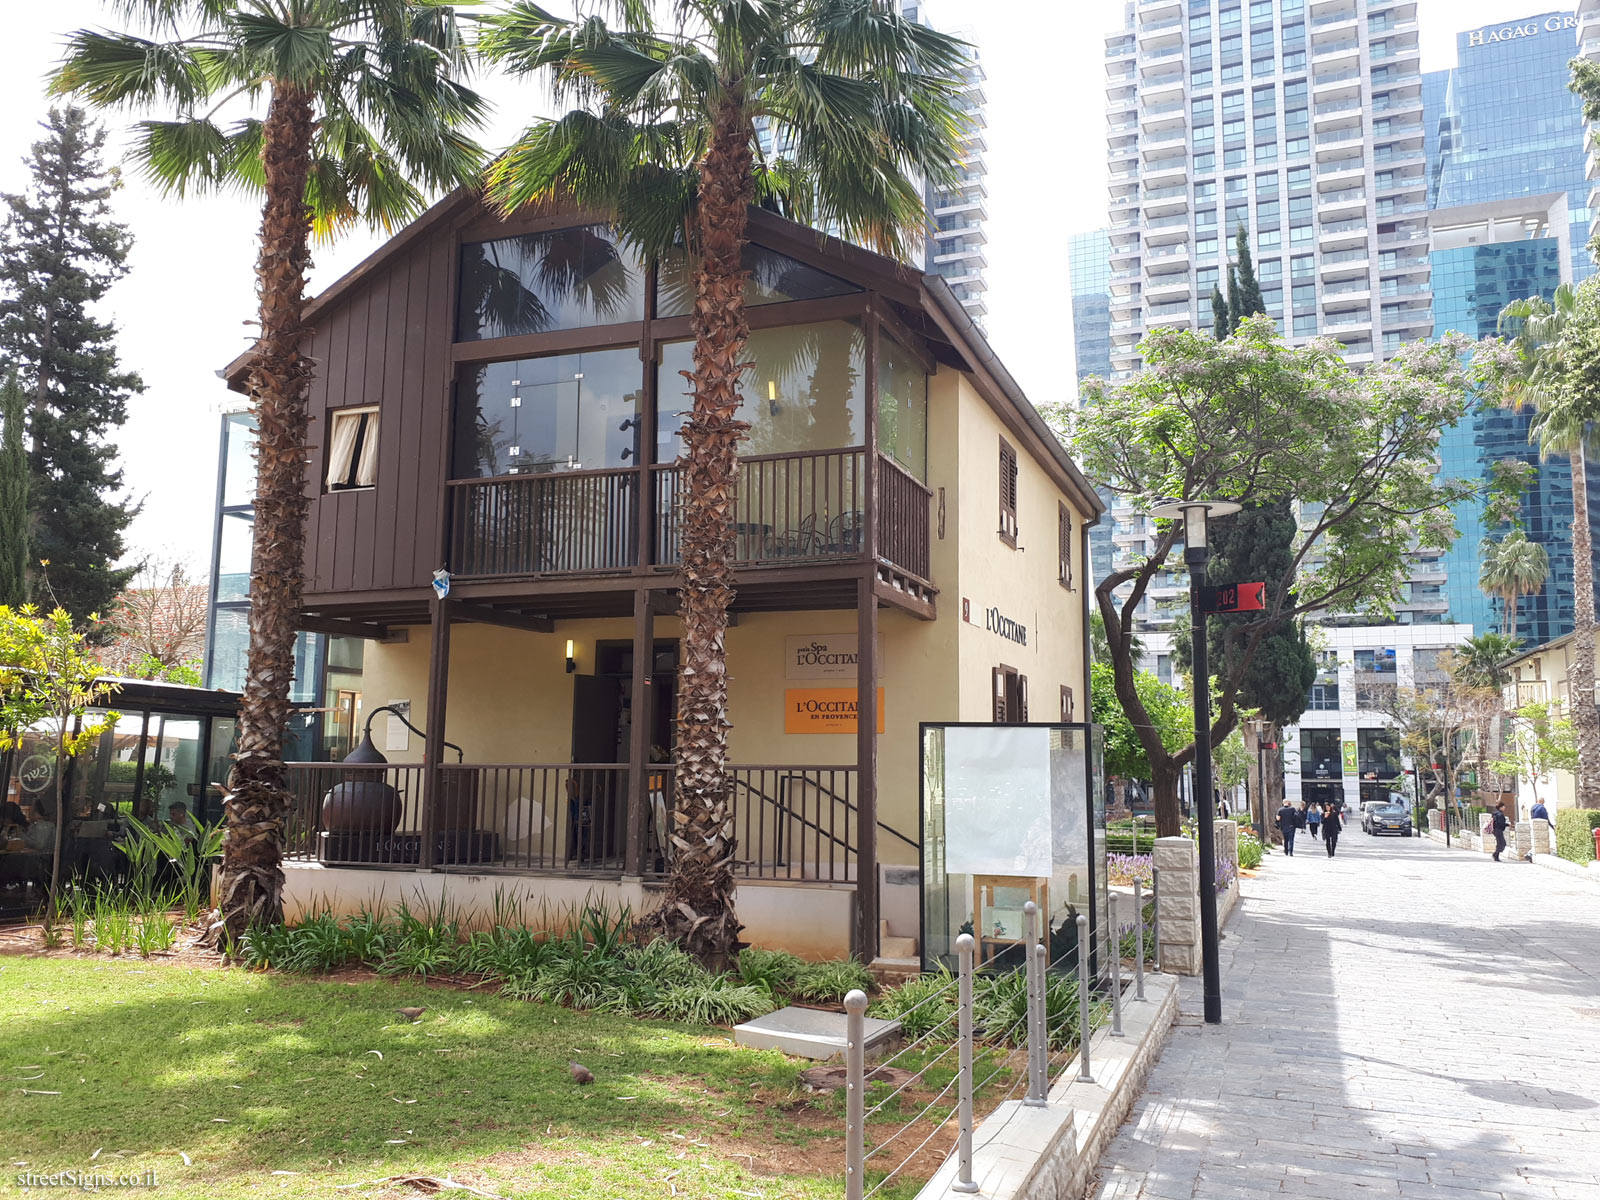 Tel Aviv - Sarona complex - buildings for preservation - Wennagel House